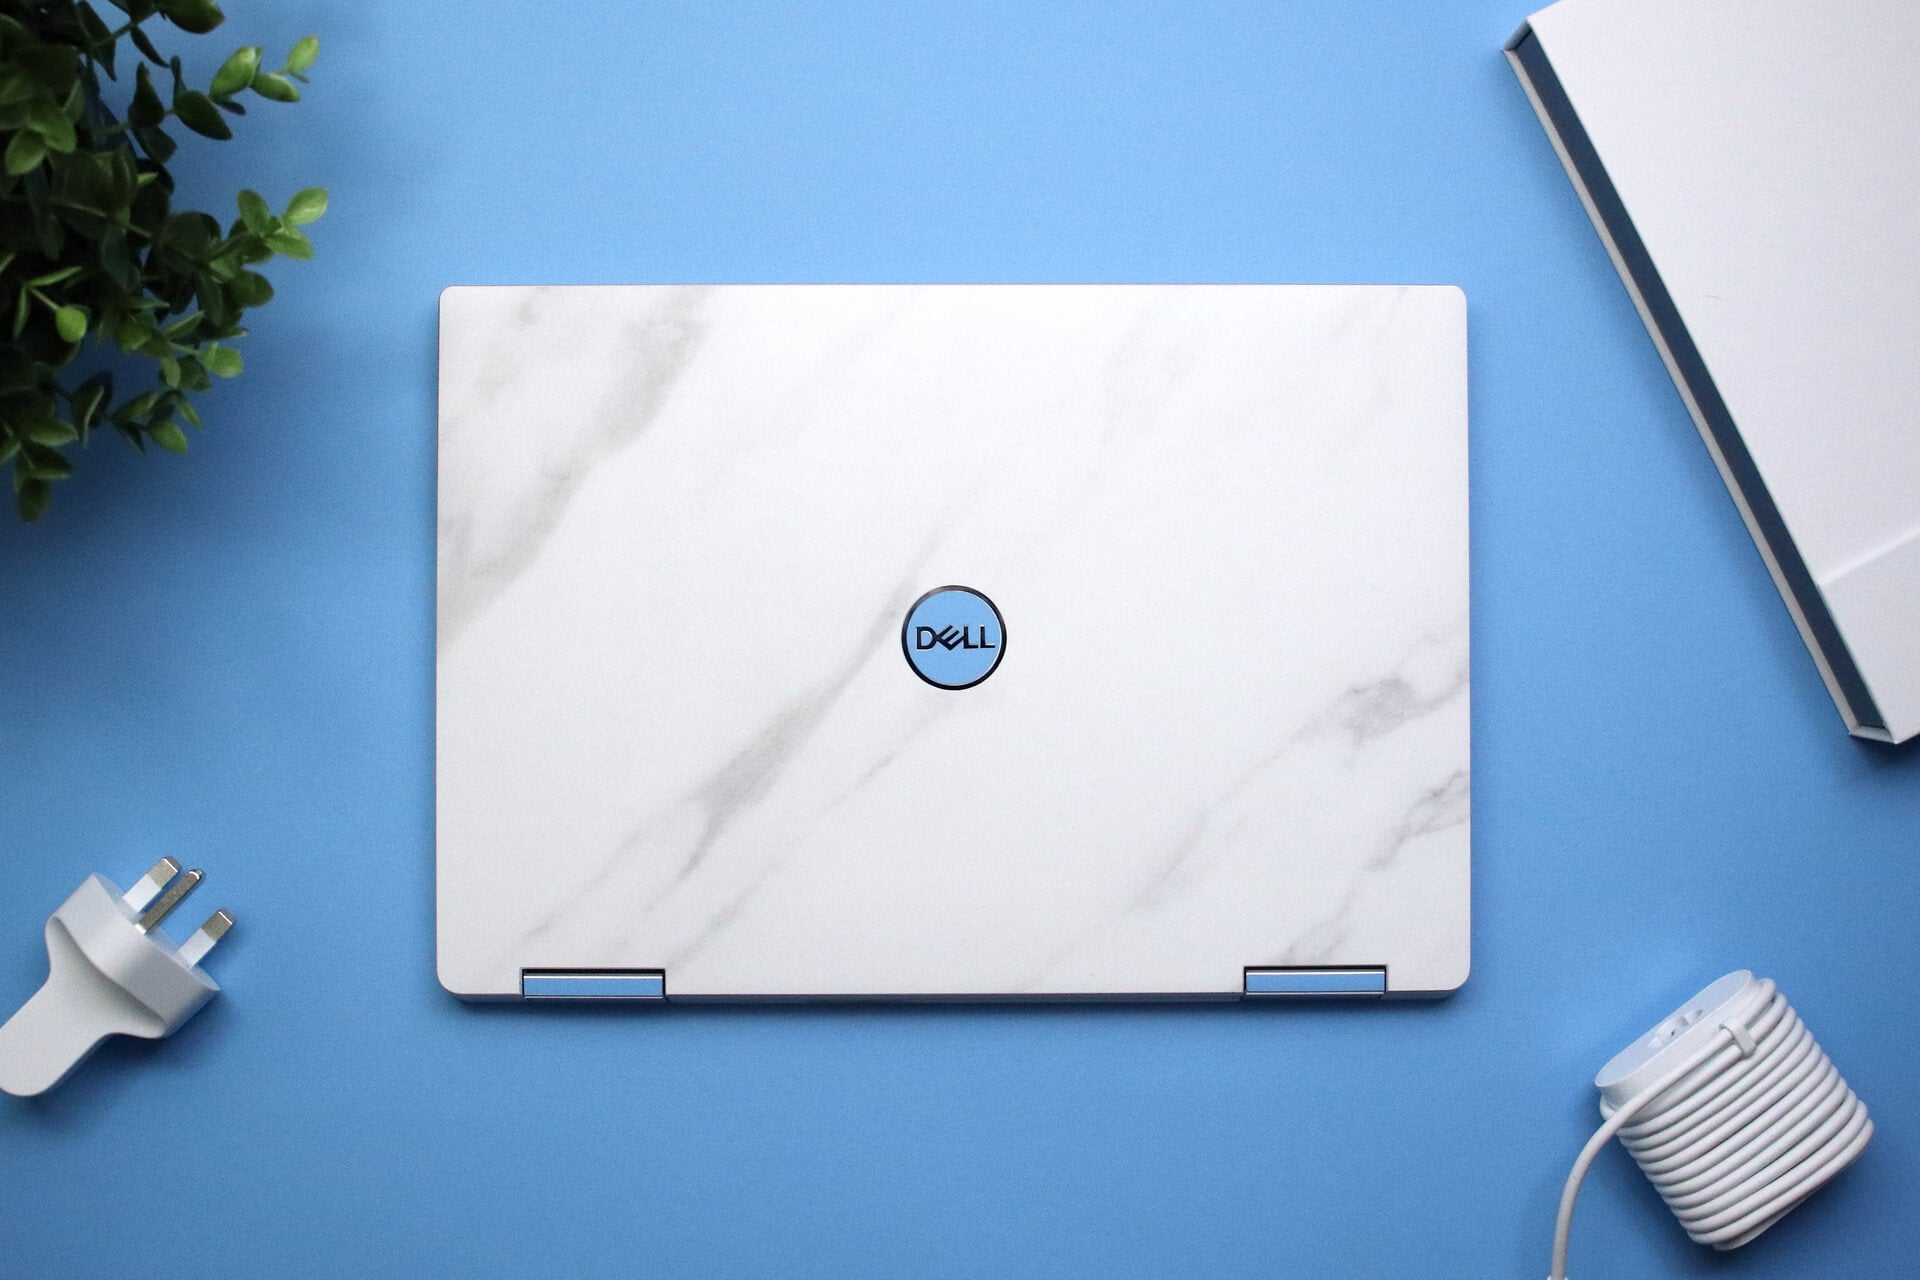 Dell XPS 13 2-in-1 7390 White Marble Skins